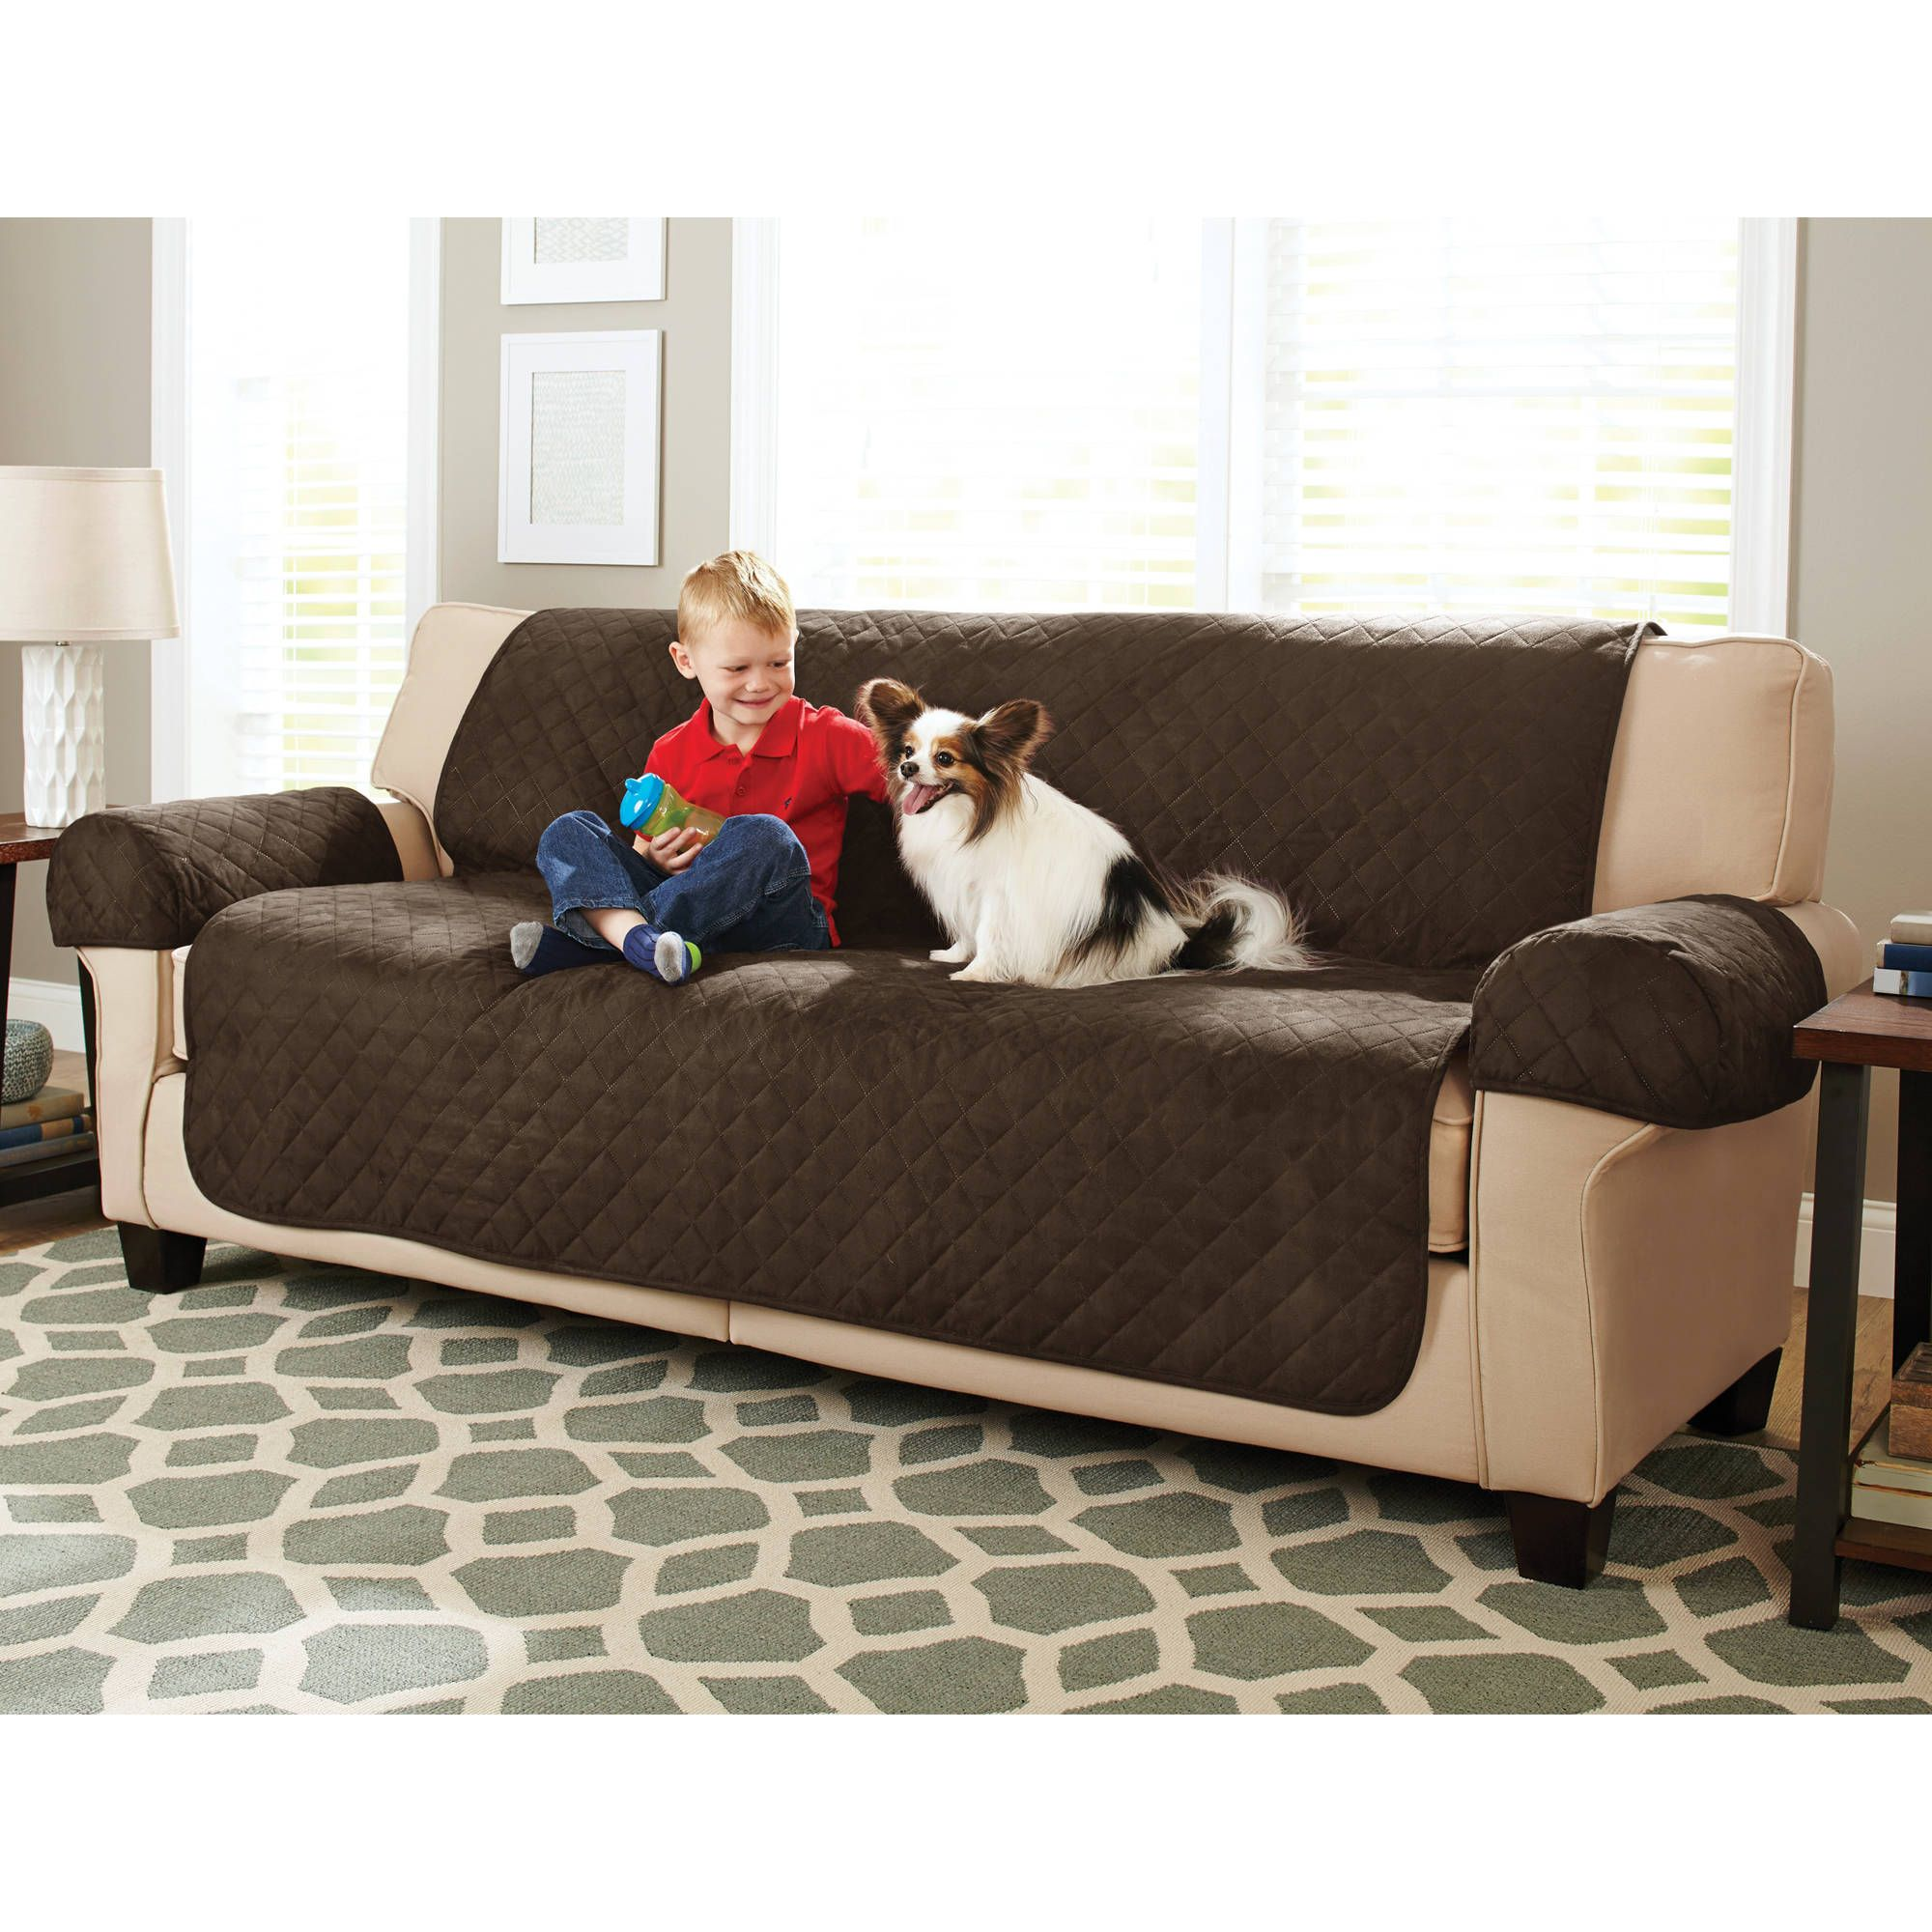 10 Sofa Cover For Pets Most Awesome